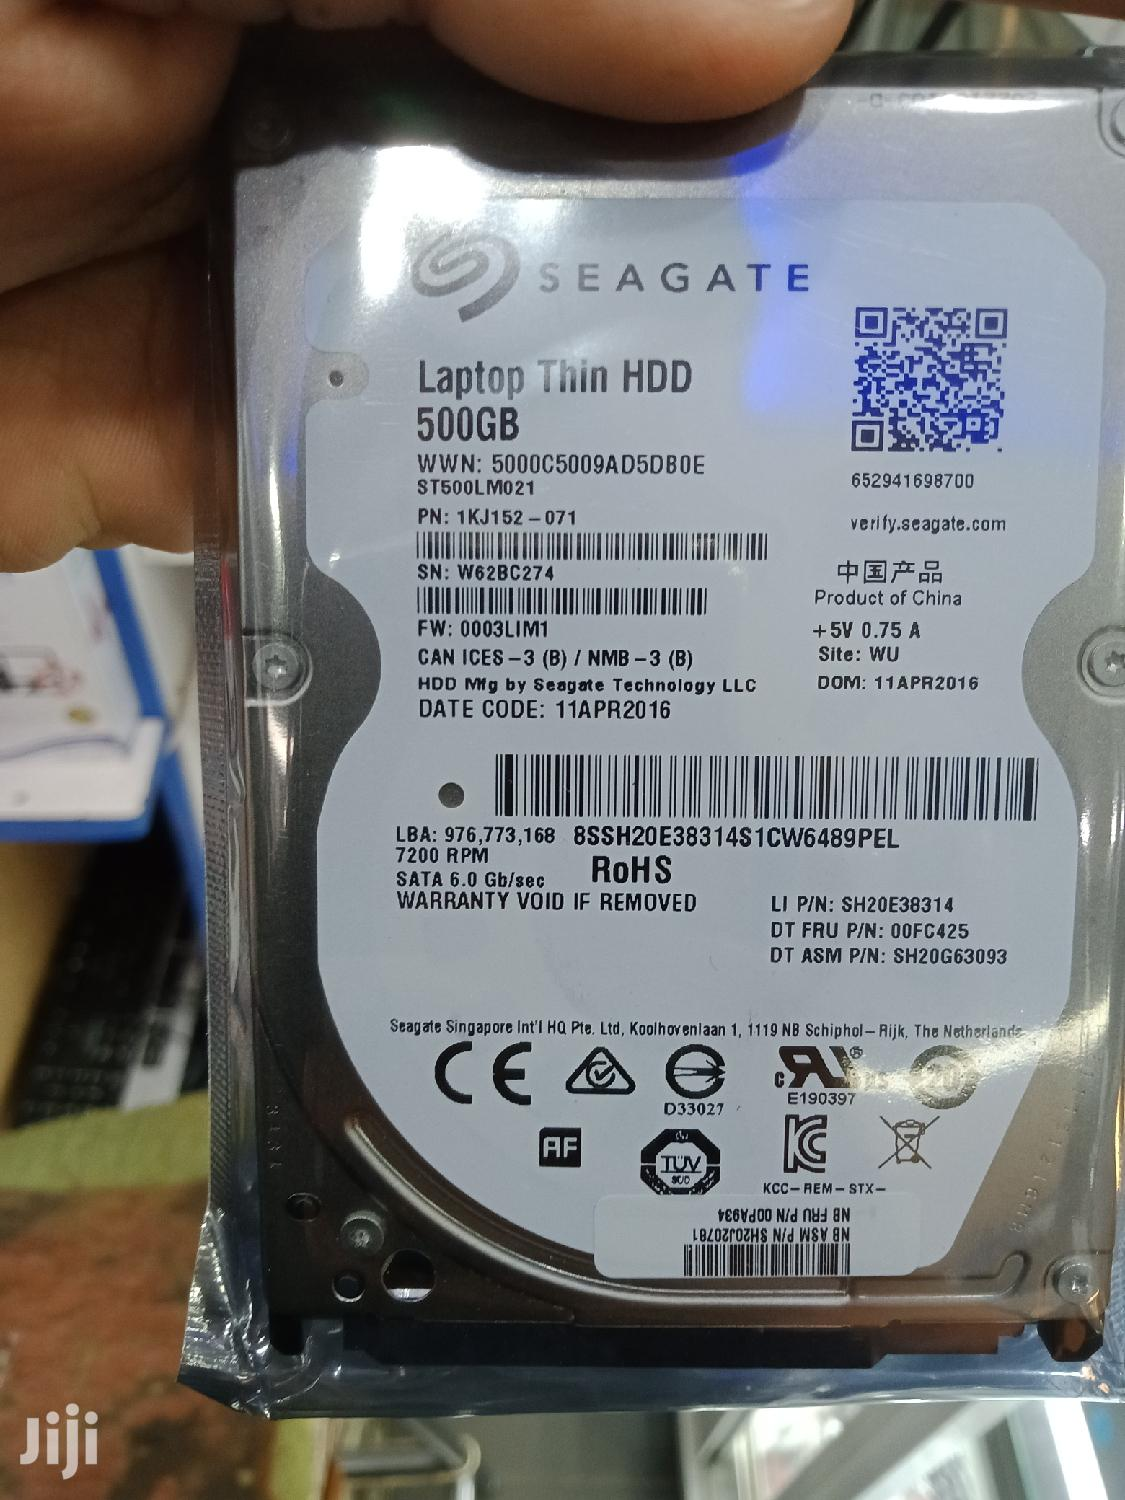 Archive: HDD Laptop Slim 500gb